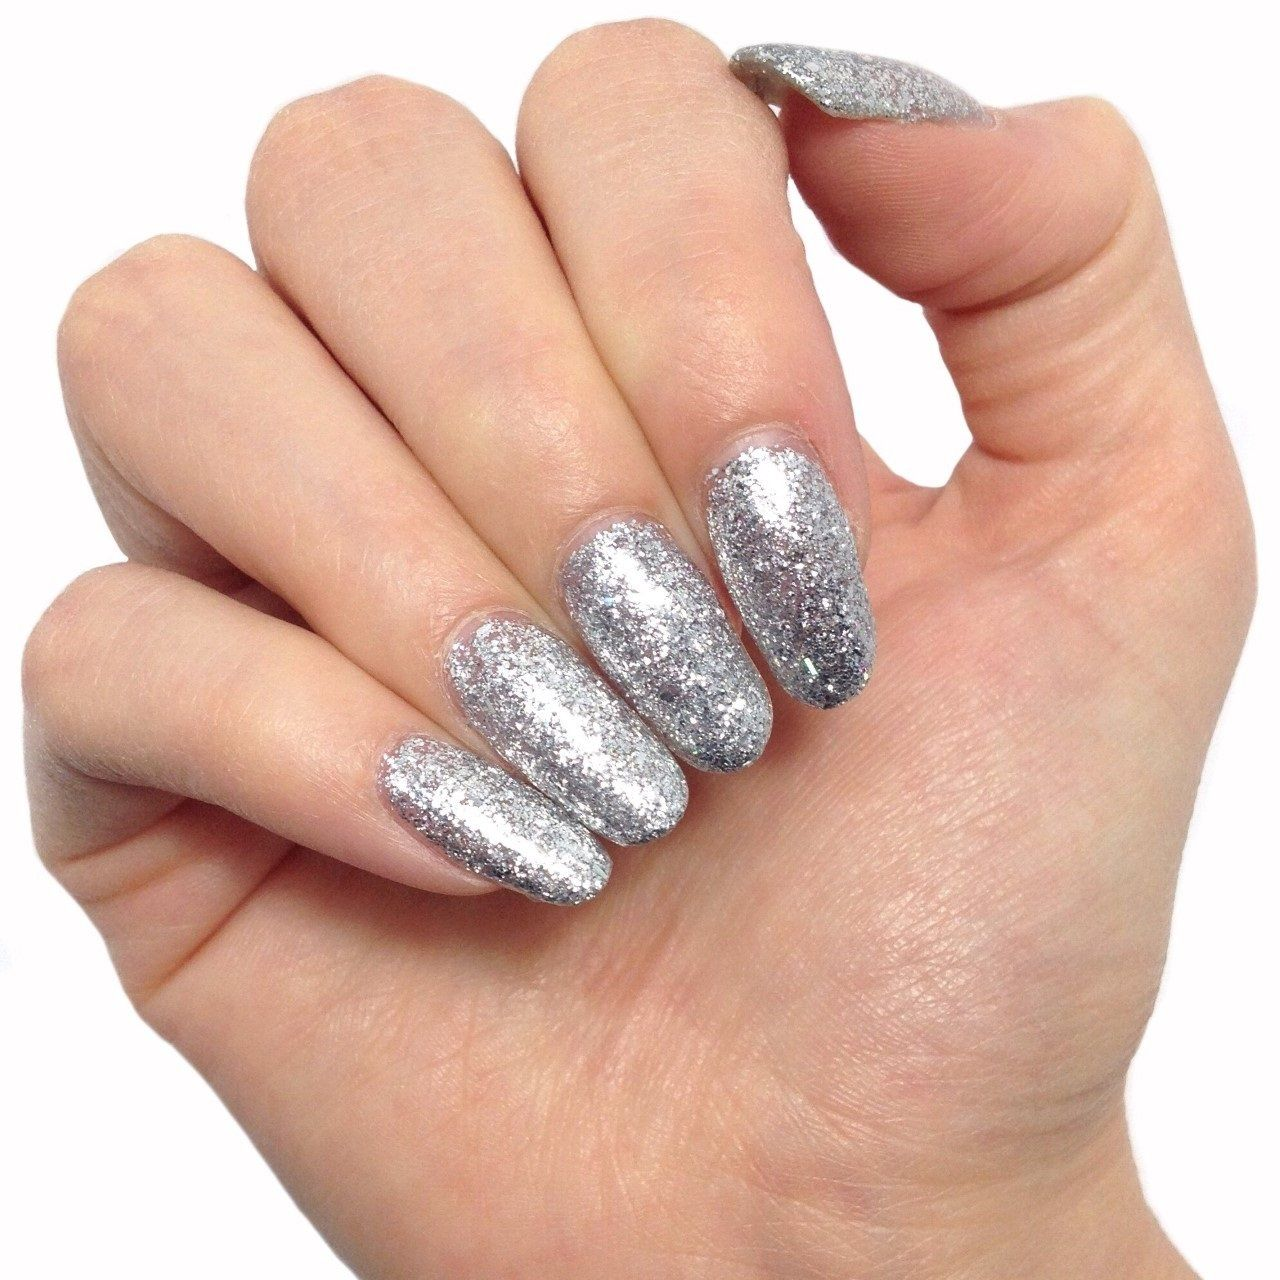 Bluesky LUXURY SILVER Sparkly Glitter UV/LED Soak Off Gel Nail Polish - KD32